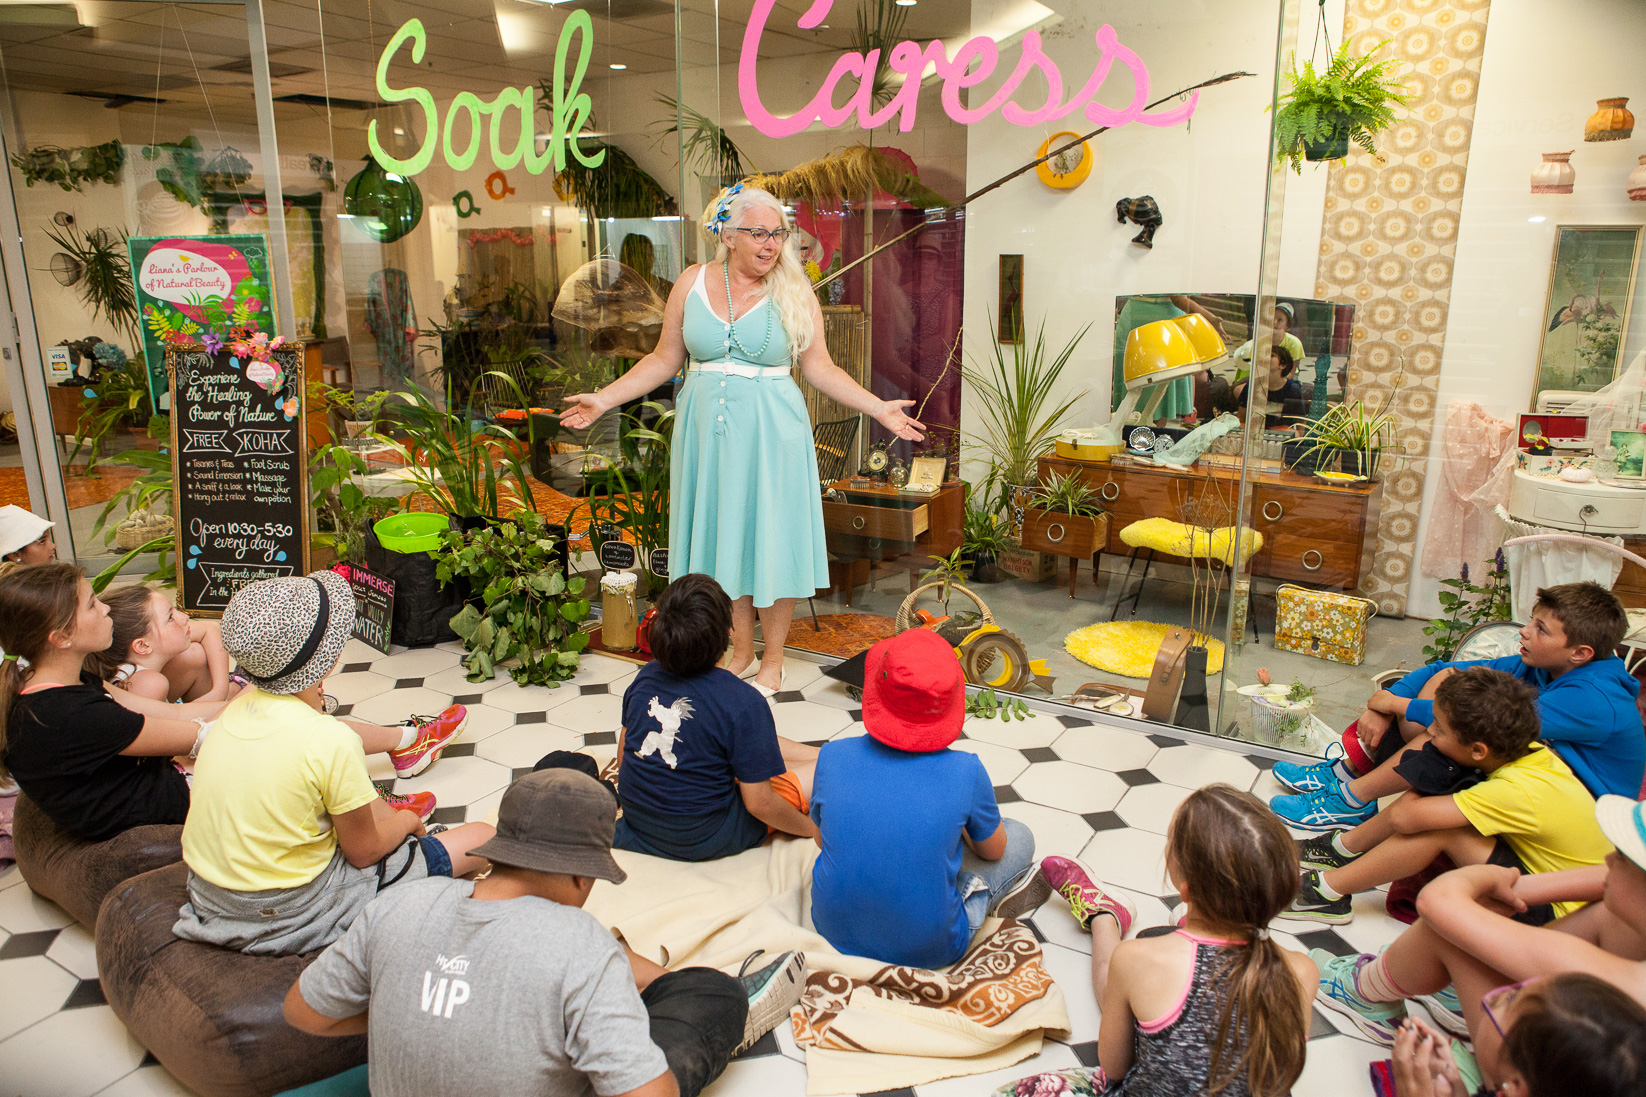 Children engage with Liana's Parlour of Natural Beauty, a recent project by Liana Stupples in Lower Hutt which brought all the natural goodness of the surrounding environment into a vacant retail space. Image: Dionne Ward